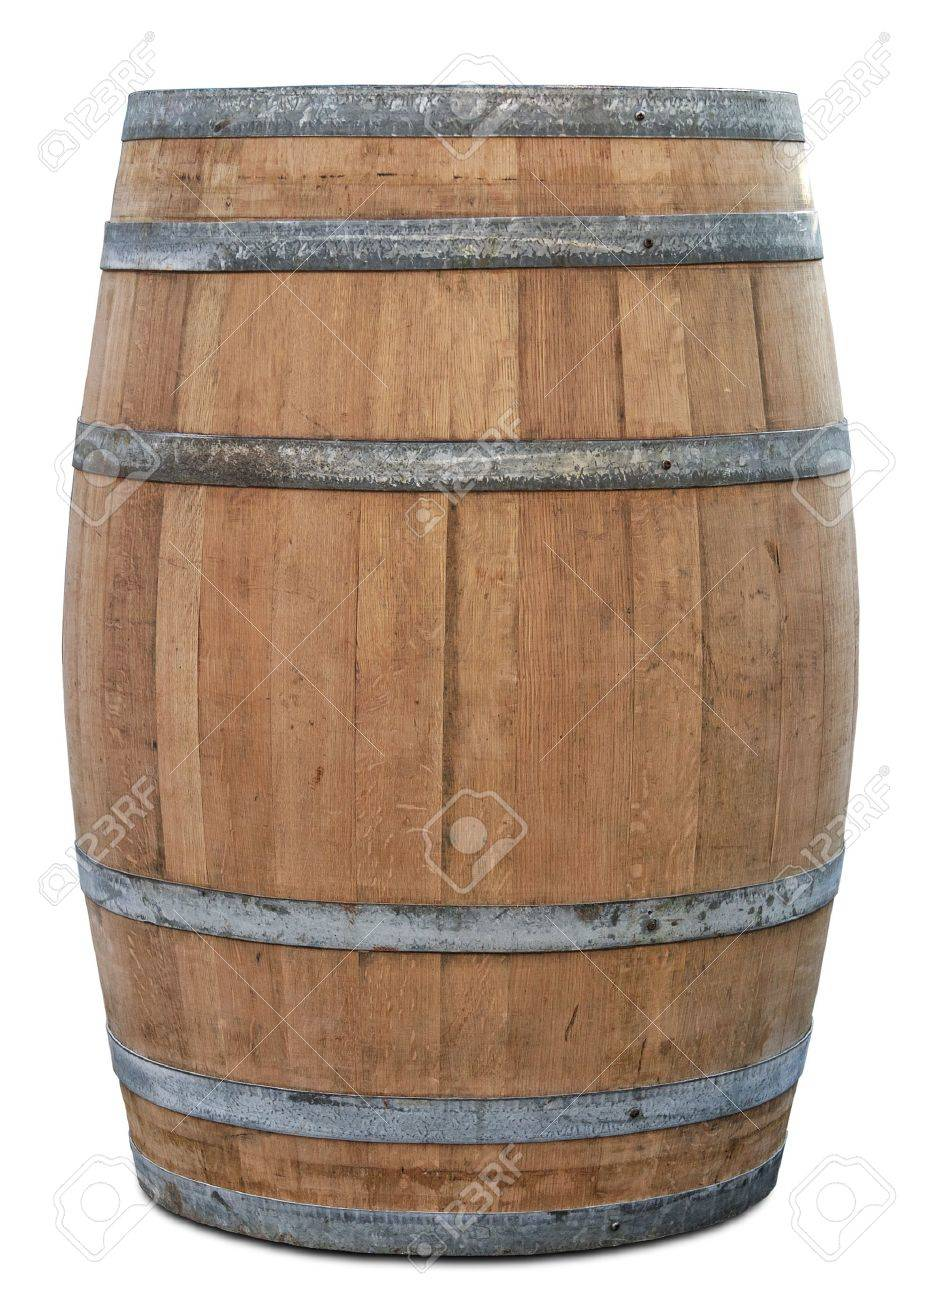 Barrel with clipping path - 10401110